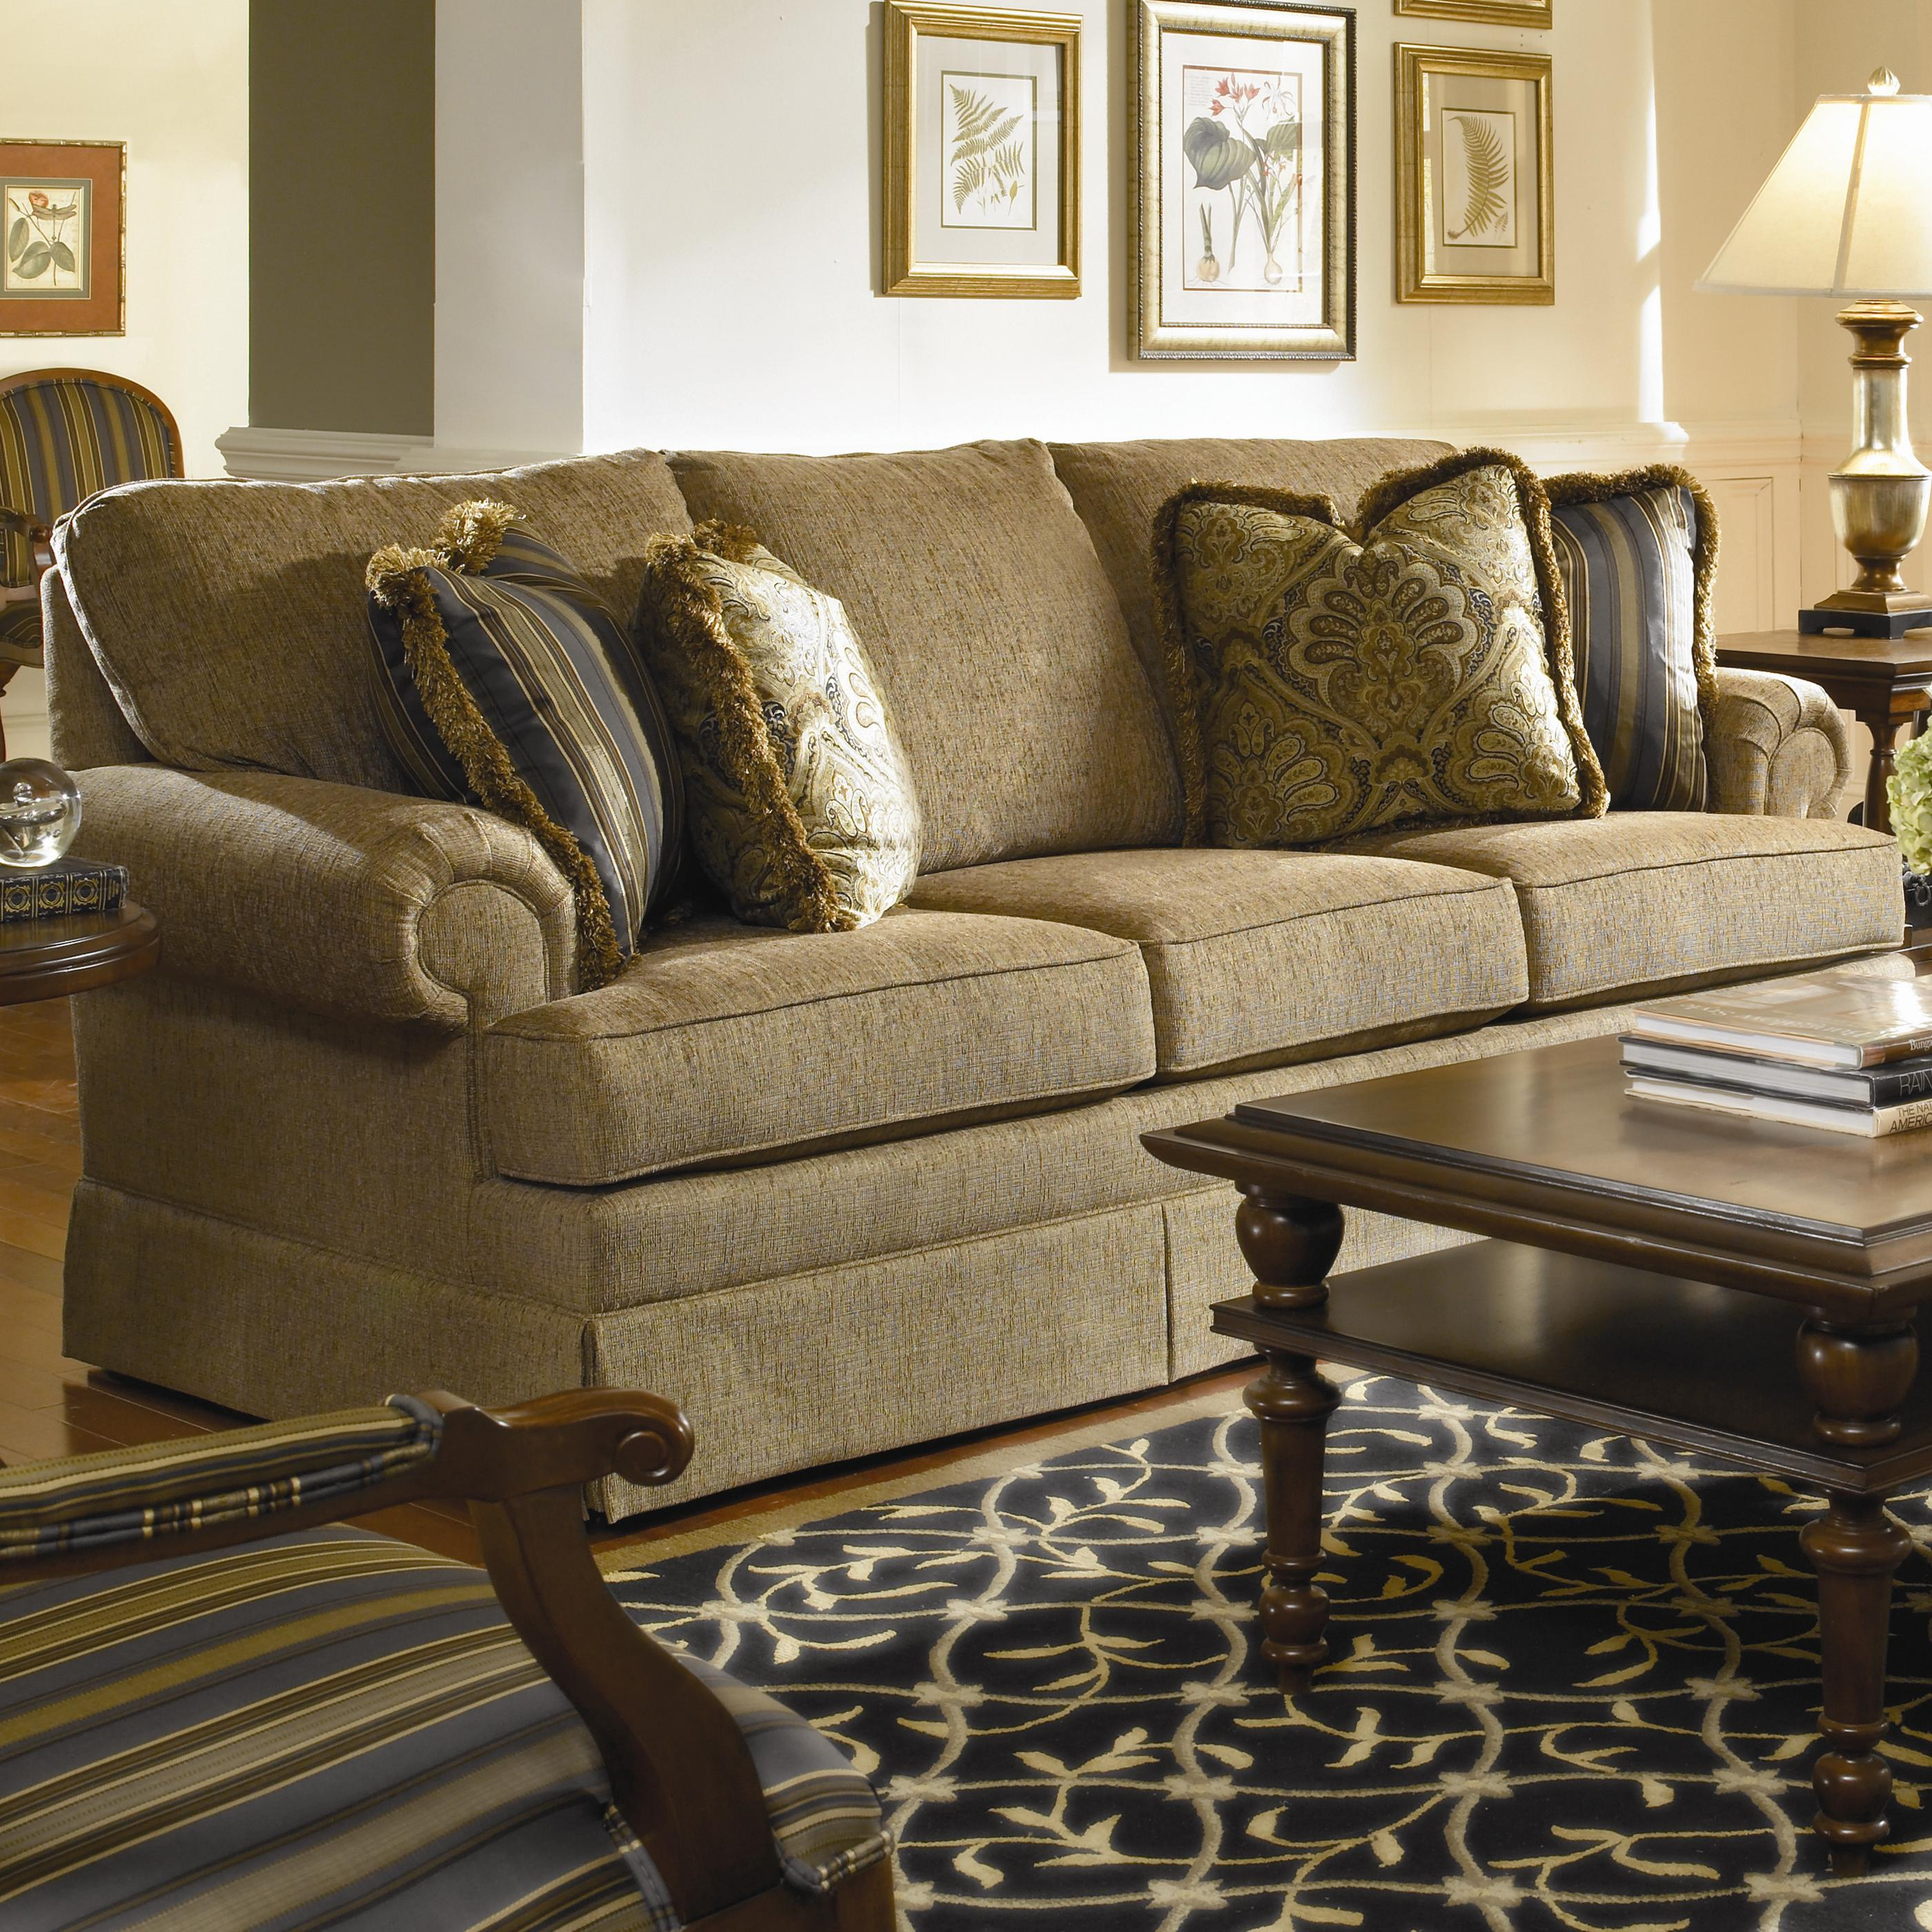 Custom Select Upholstery Custom 3-Seat Sofa by Kincaid Furniture at Johnny Janosik